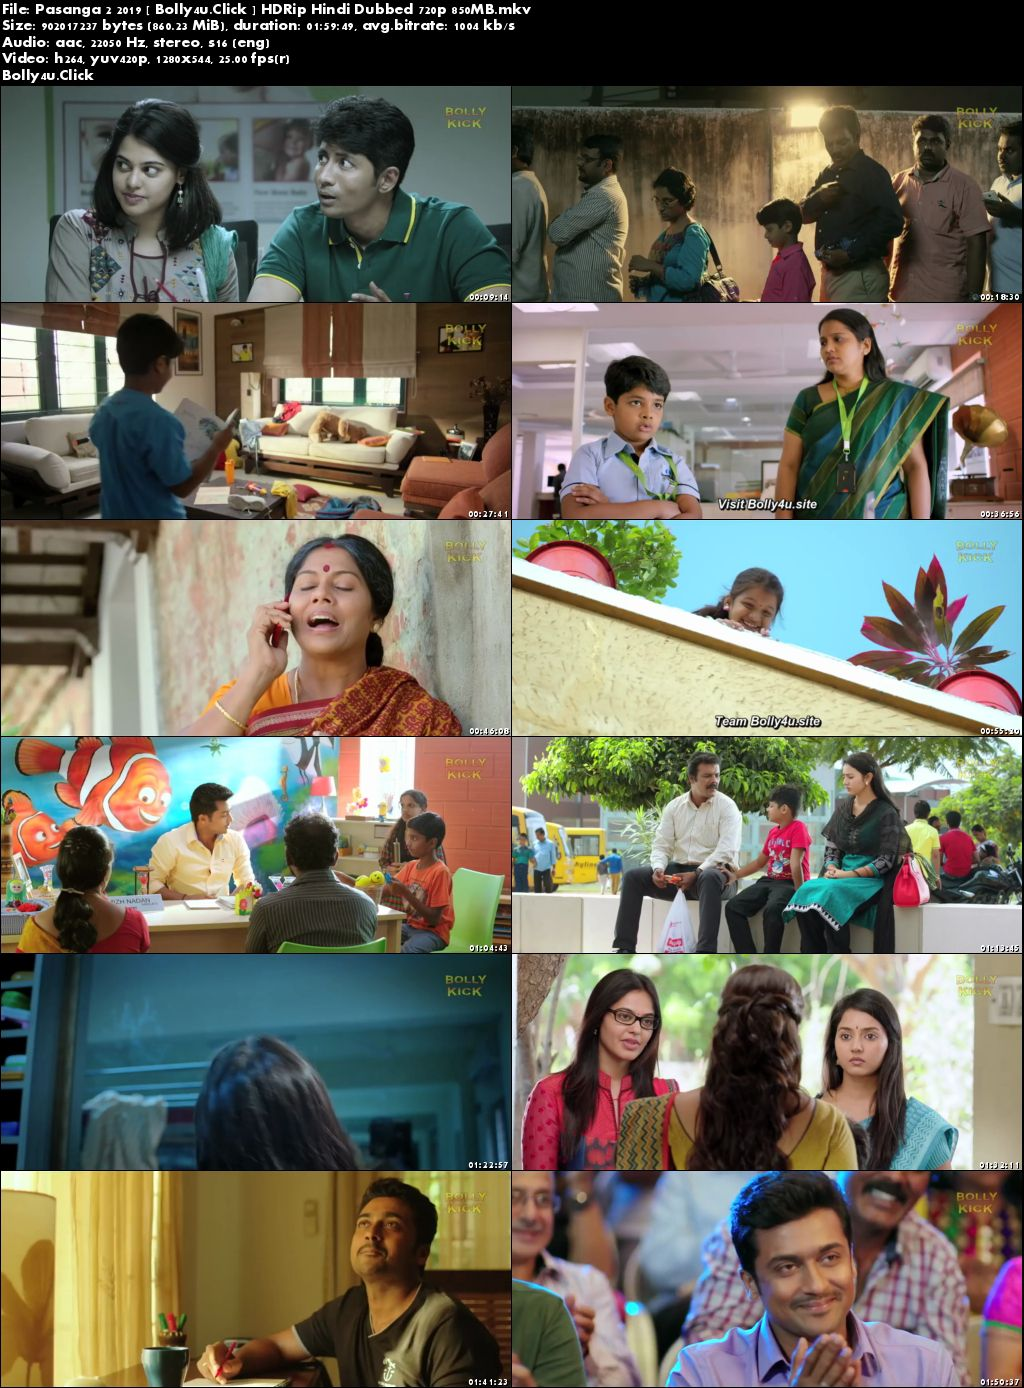 Pasanga 2 2019 HDRip 850MB Hindi Dubbed 720p Download